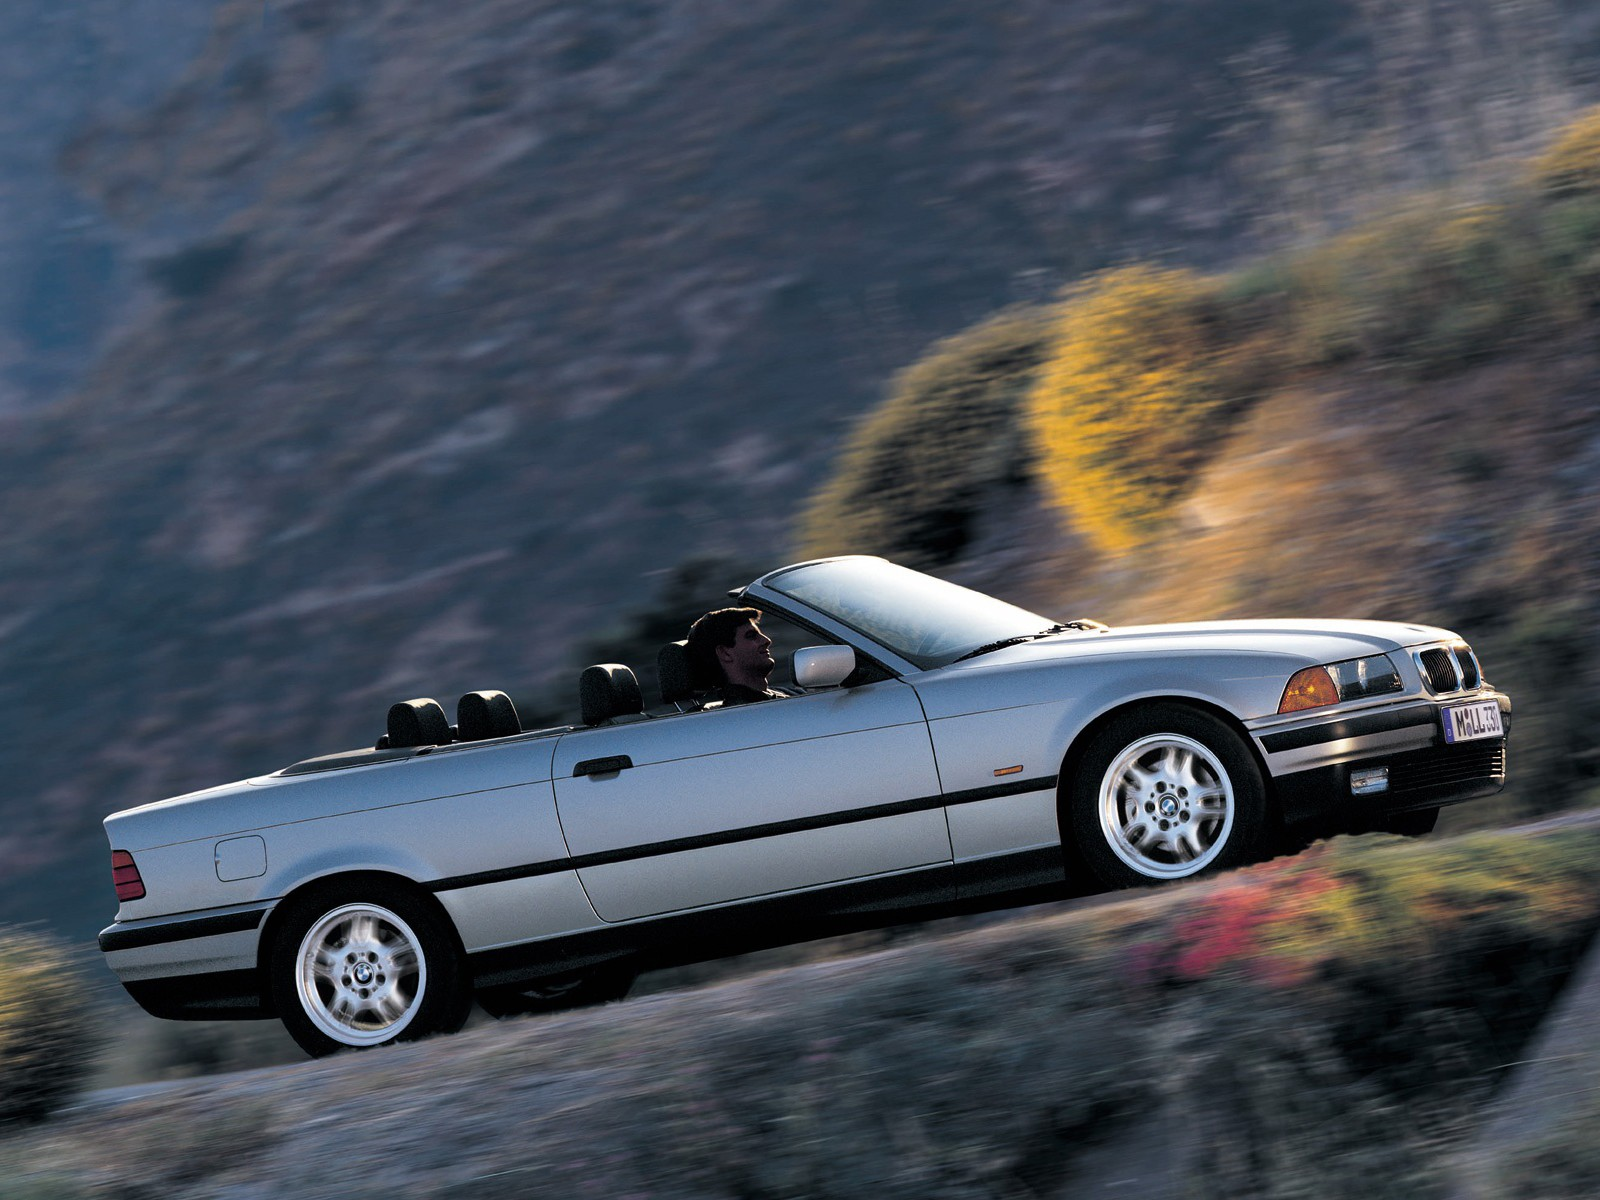 4 Door Convertible >> BMW 3 Series Cabriolet (E36) specs - 1993, 1994, 1995, 1996, 1997, 1998, 1999 - autoevolution